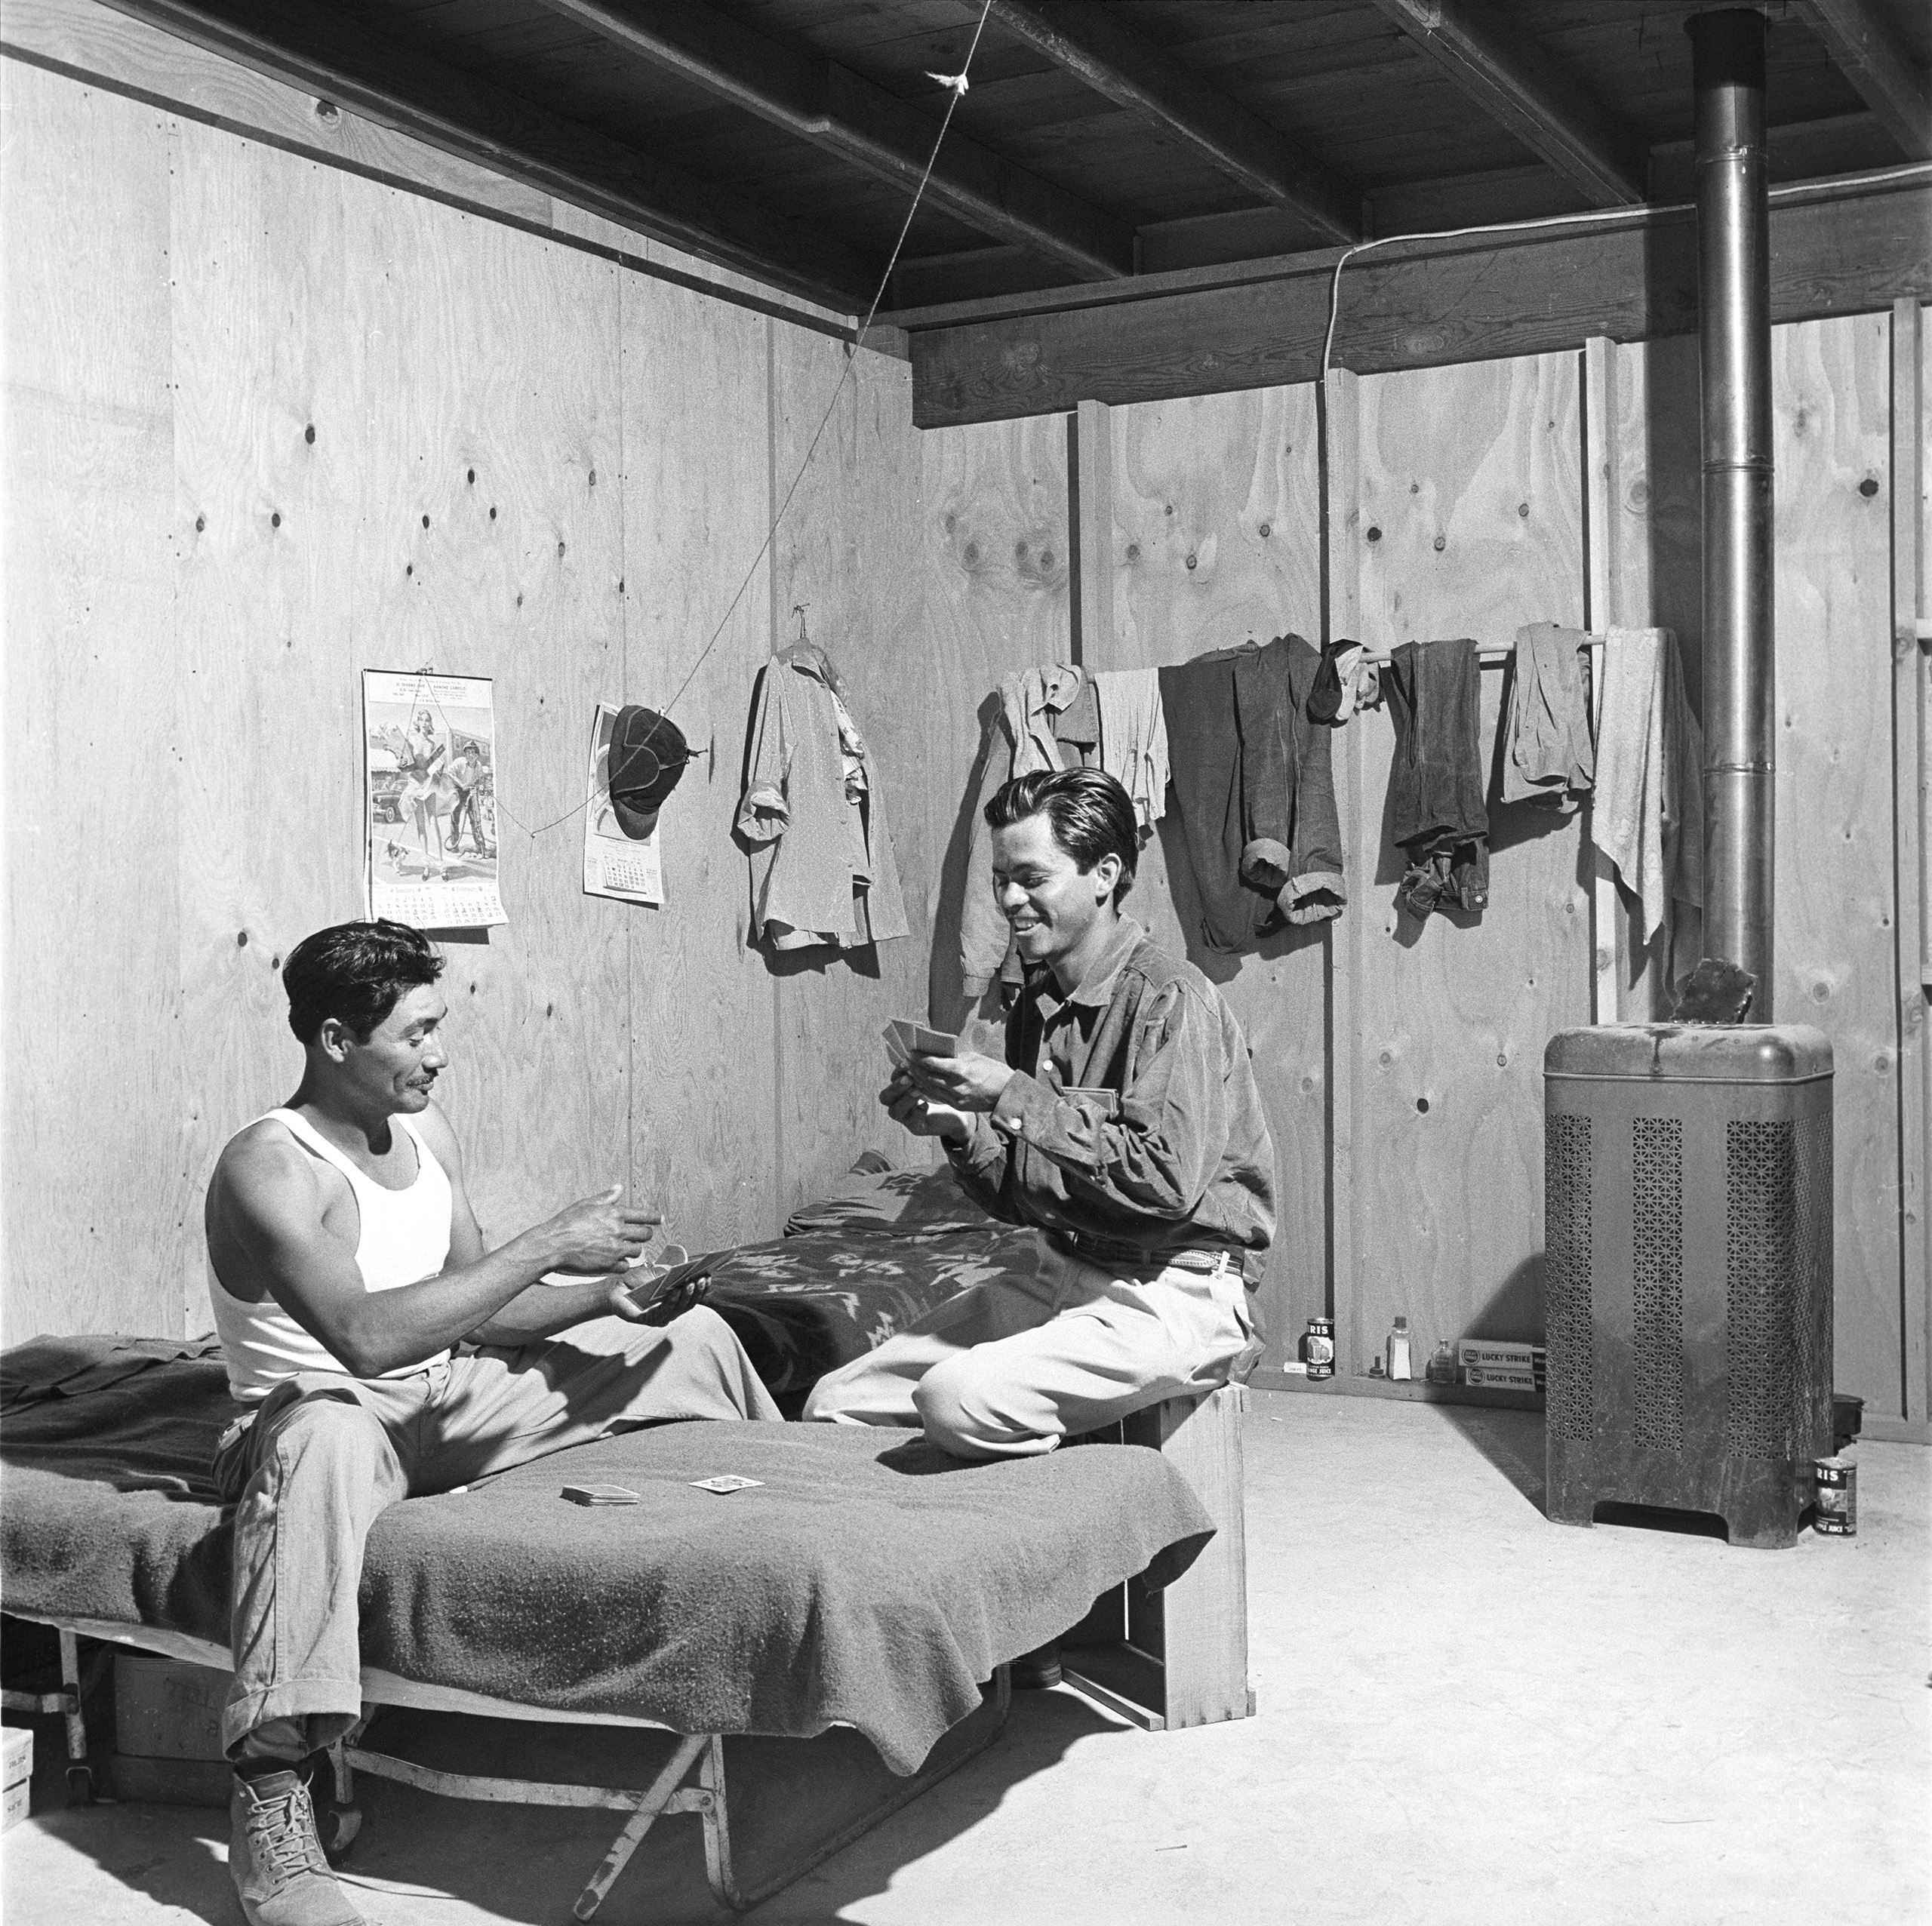 Tamayo relaxes with a fellow worker inside the temporary living quarters, California, 1957.